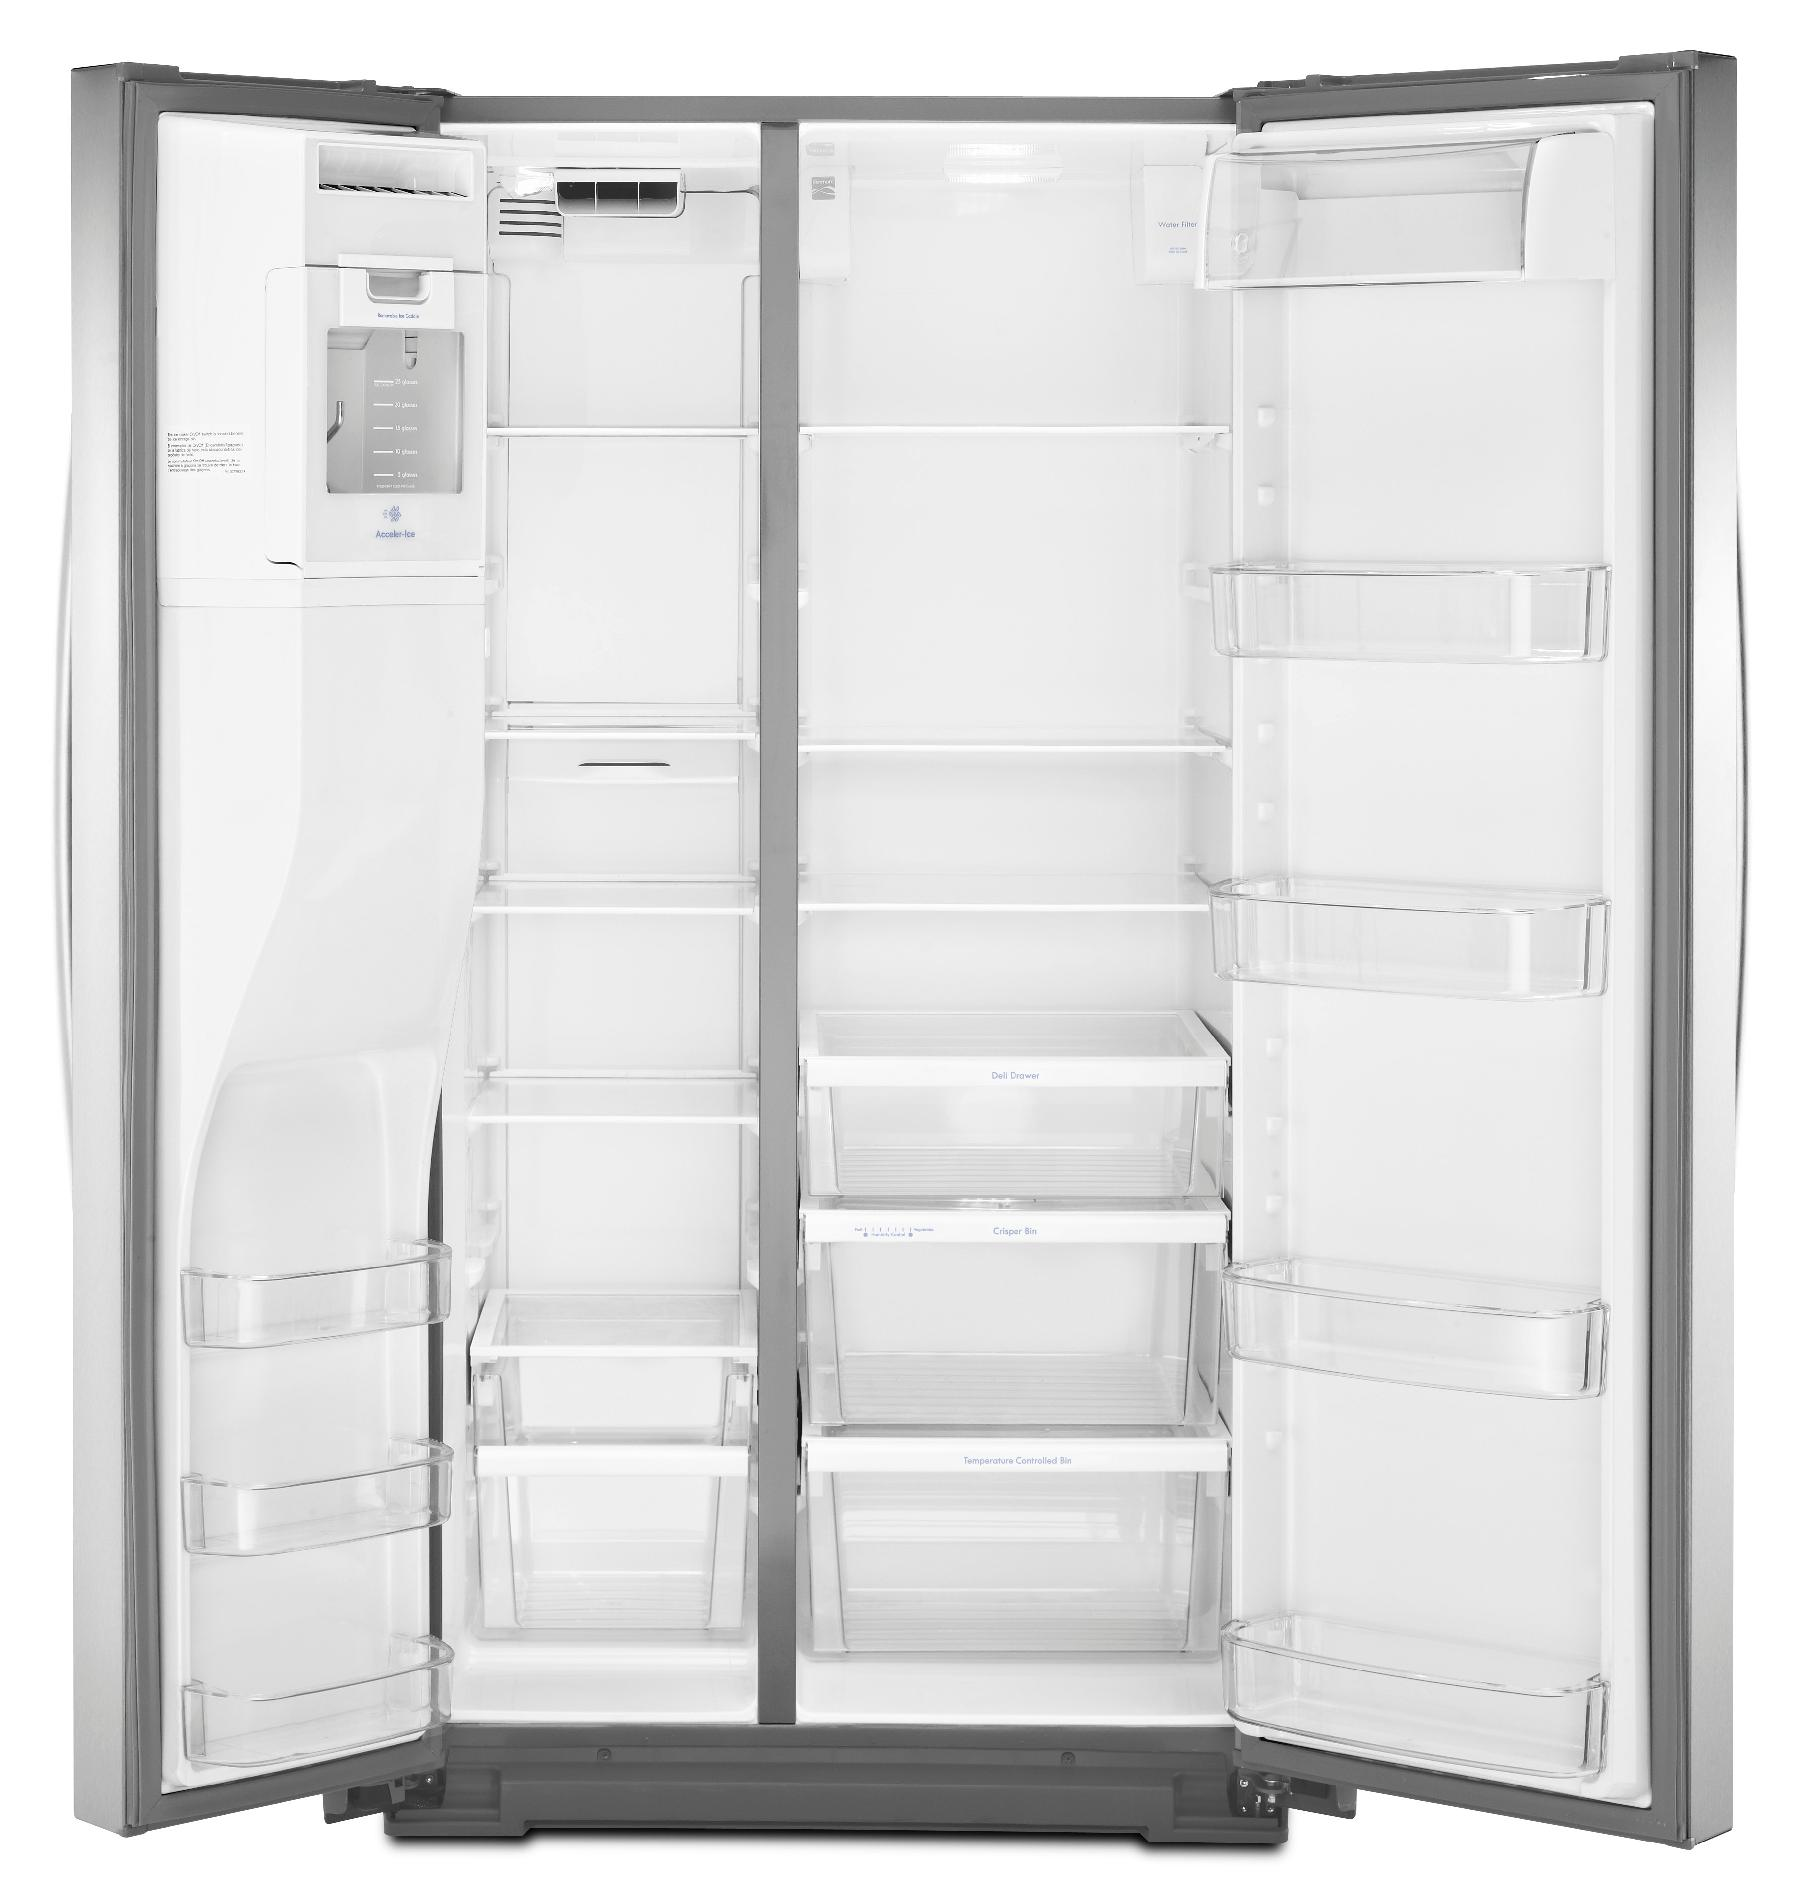 Kenmore 51133 26 cu. ft. Side-by-Side Refrigerator—Stainless Steel